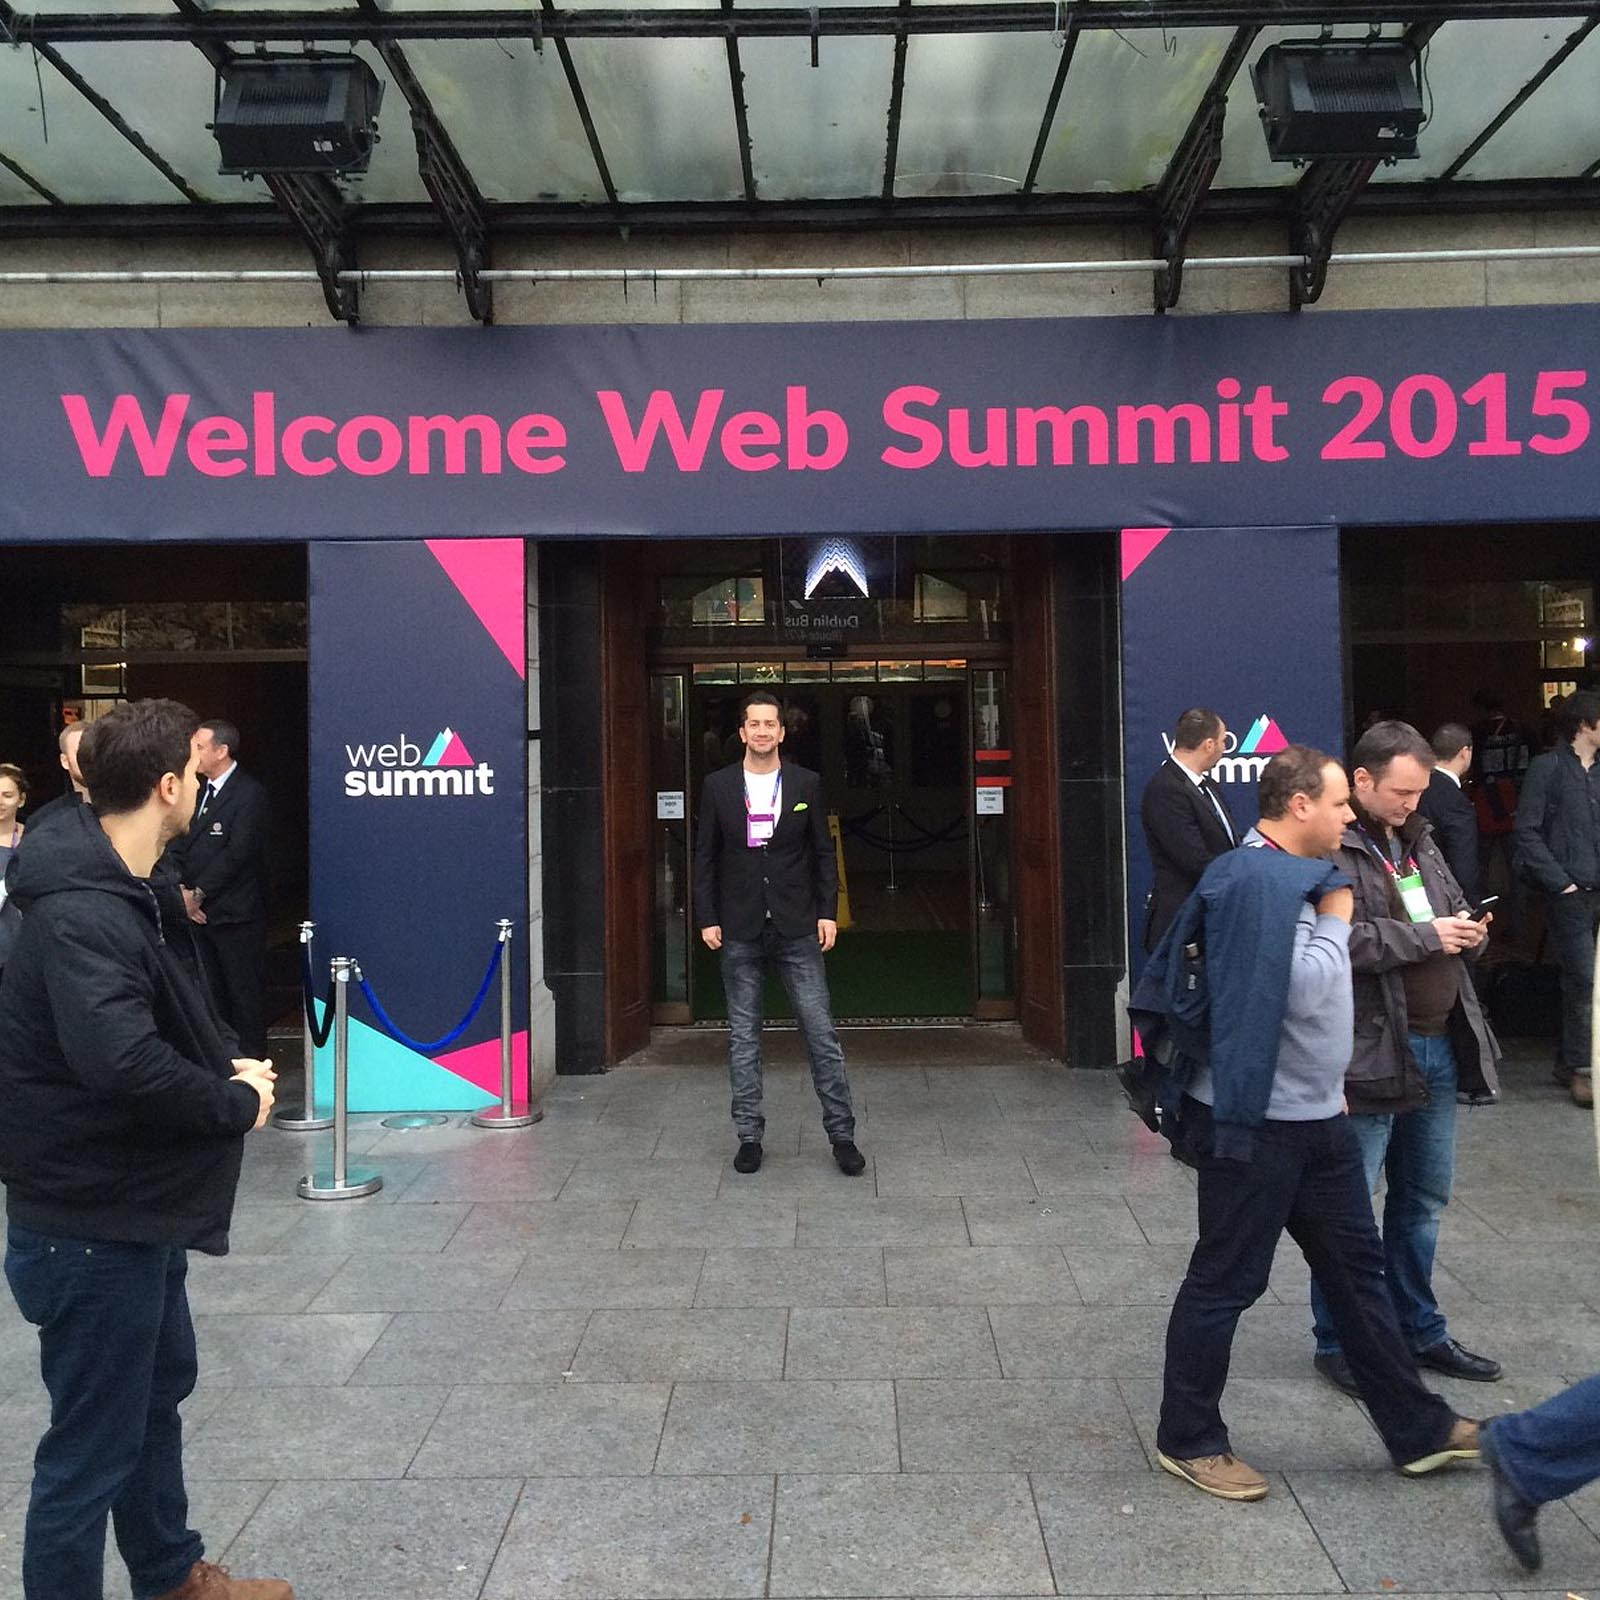 Adam at the 2015 WebSummit Technology Conference in Dublin Ireland